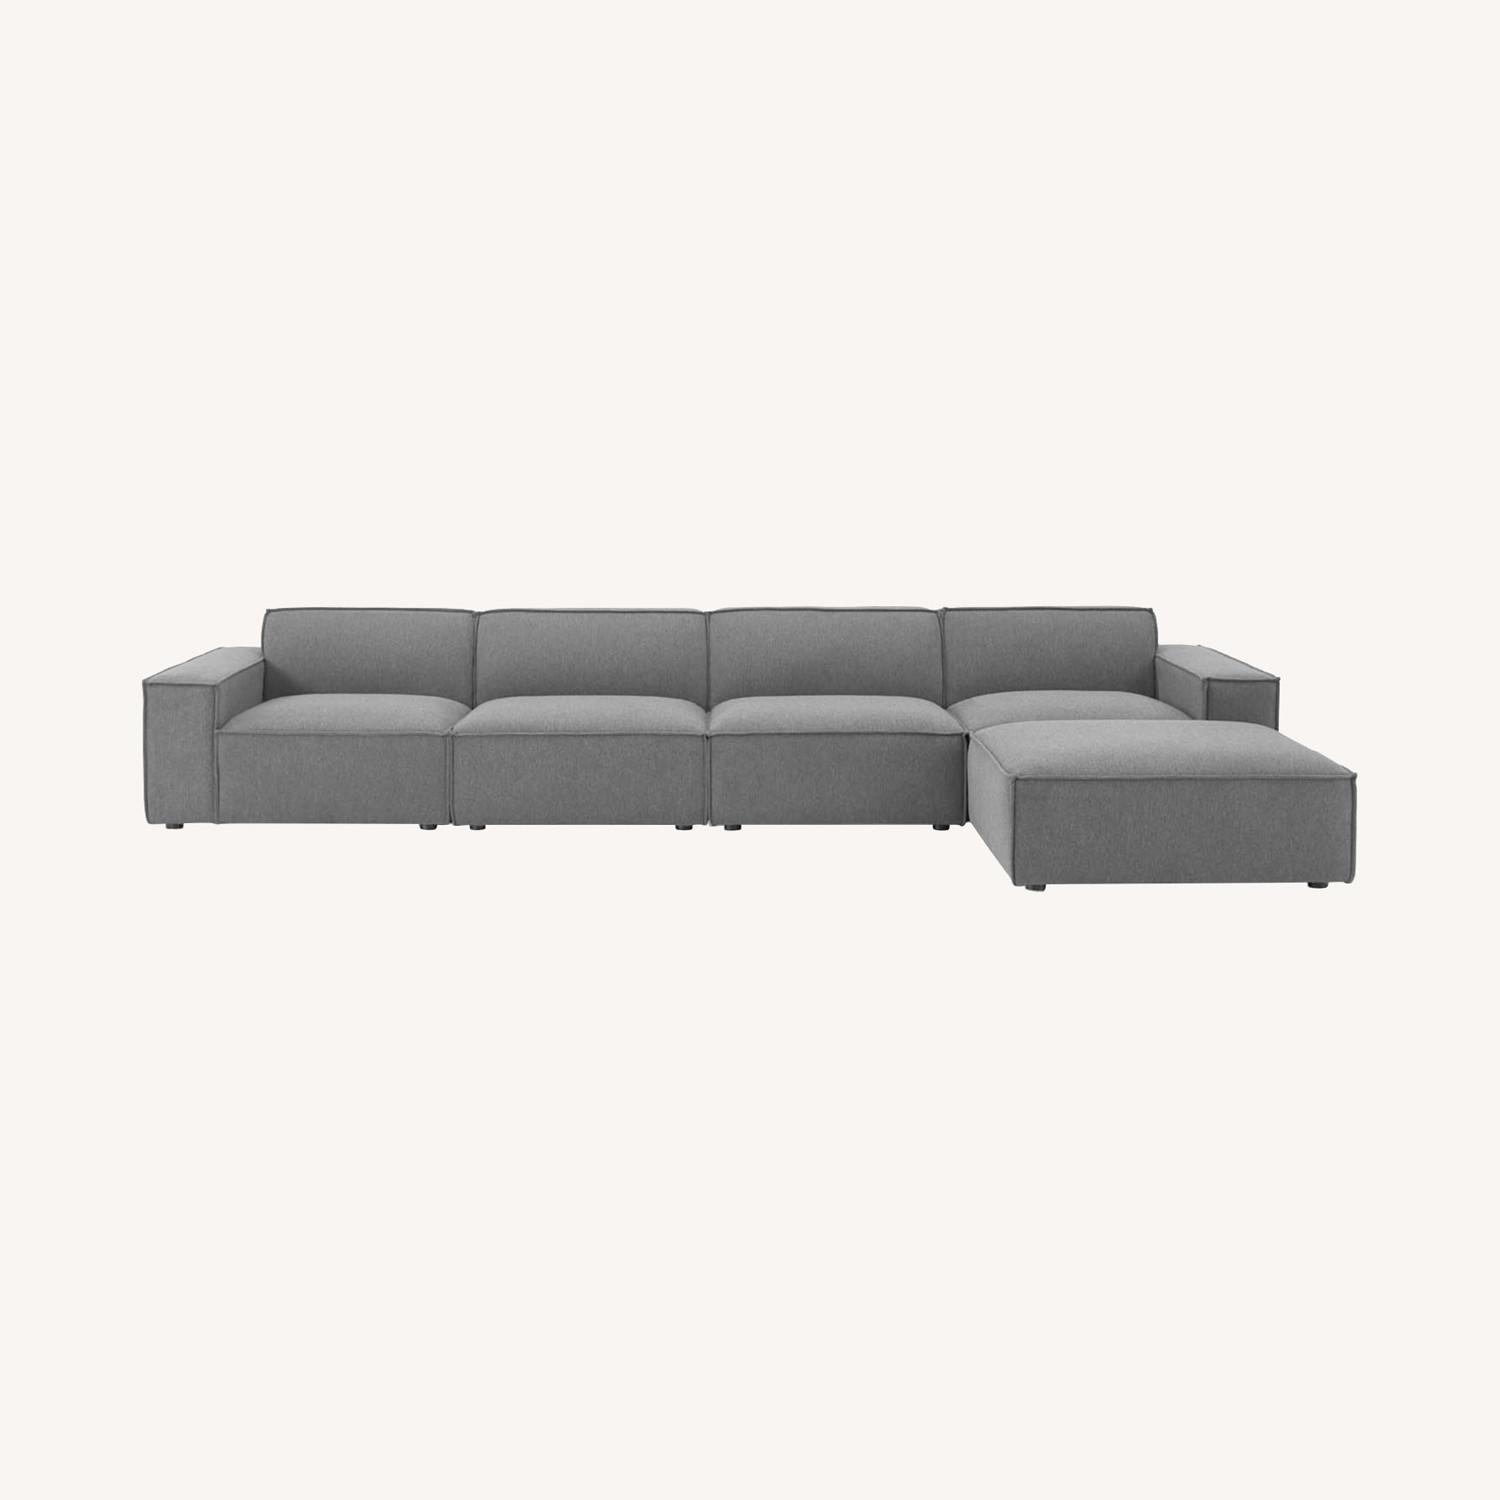 5-Piece Sectional Sofa In Charcoal Fabric - image-12